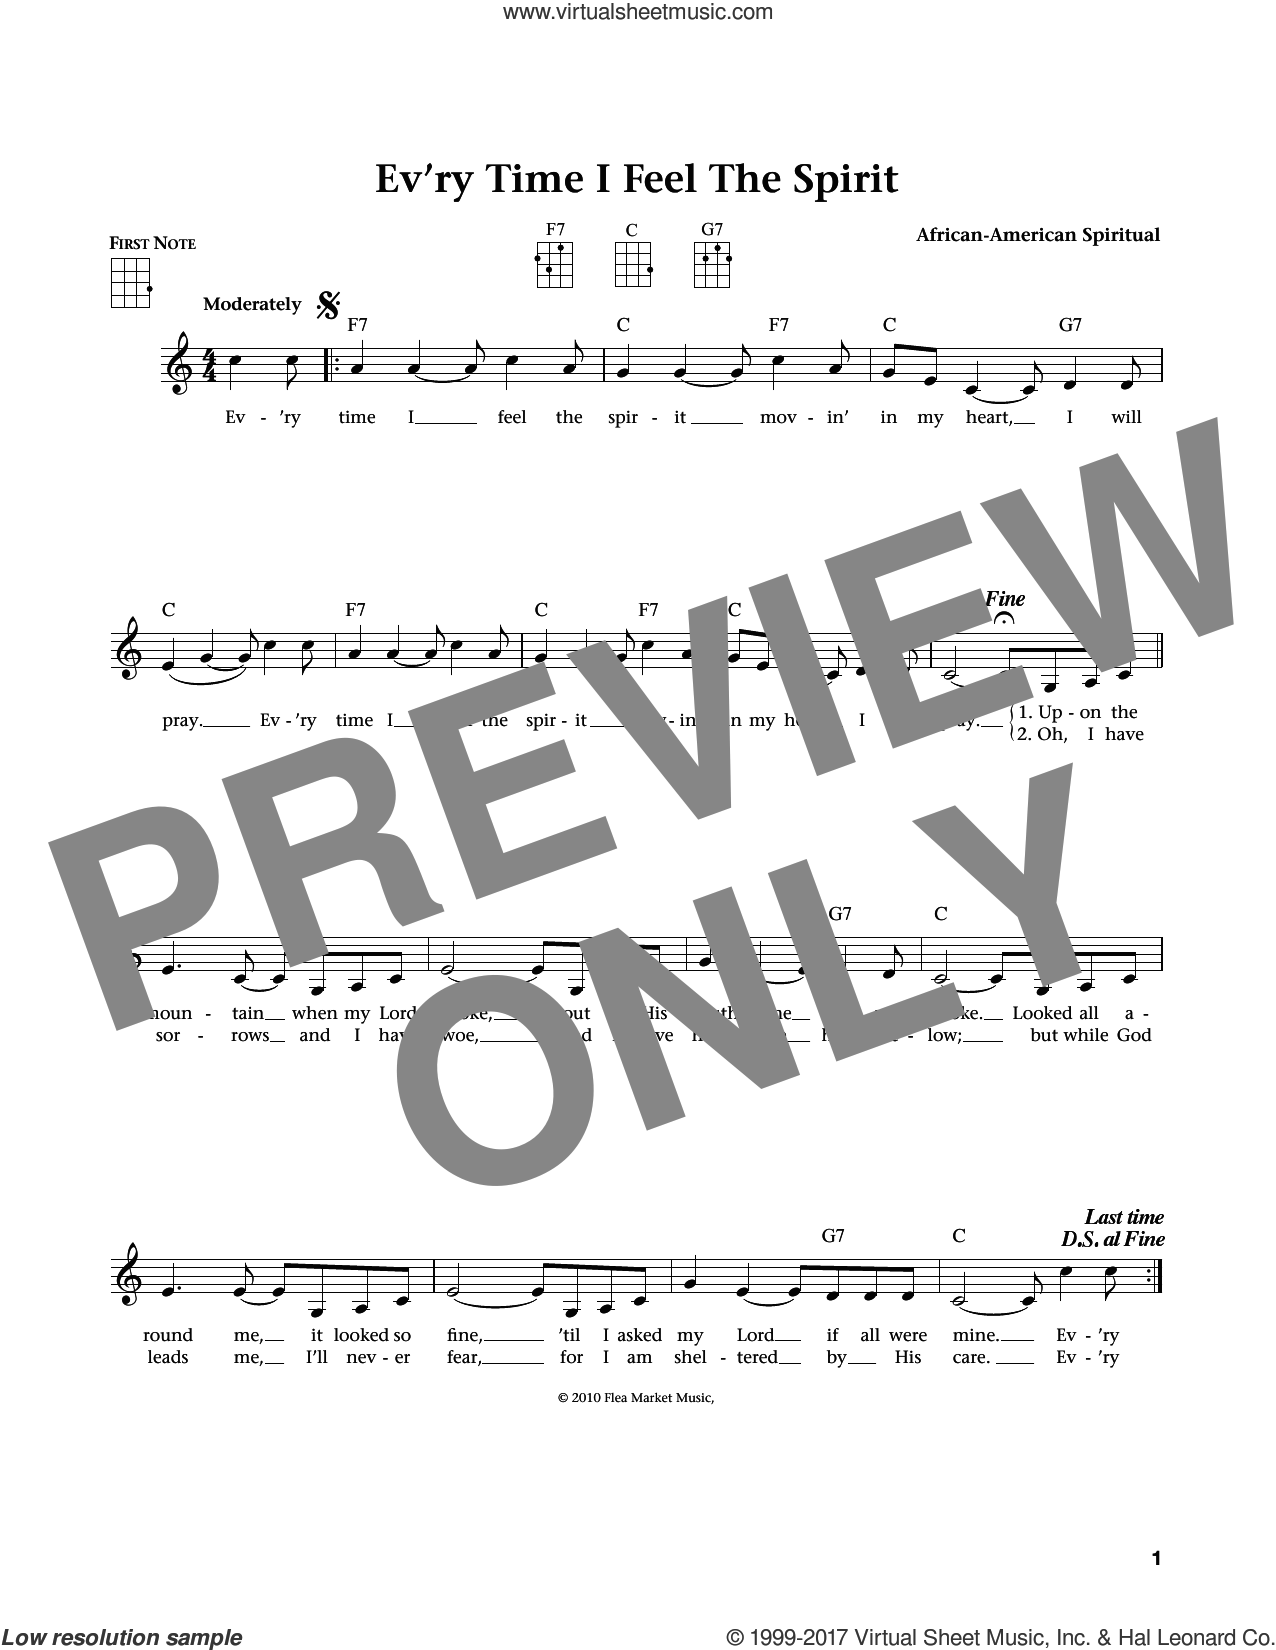 Every Time I Feel The Spirit sheet music for ukulele. Score Image Preview.